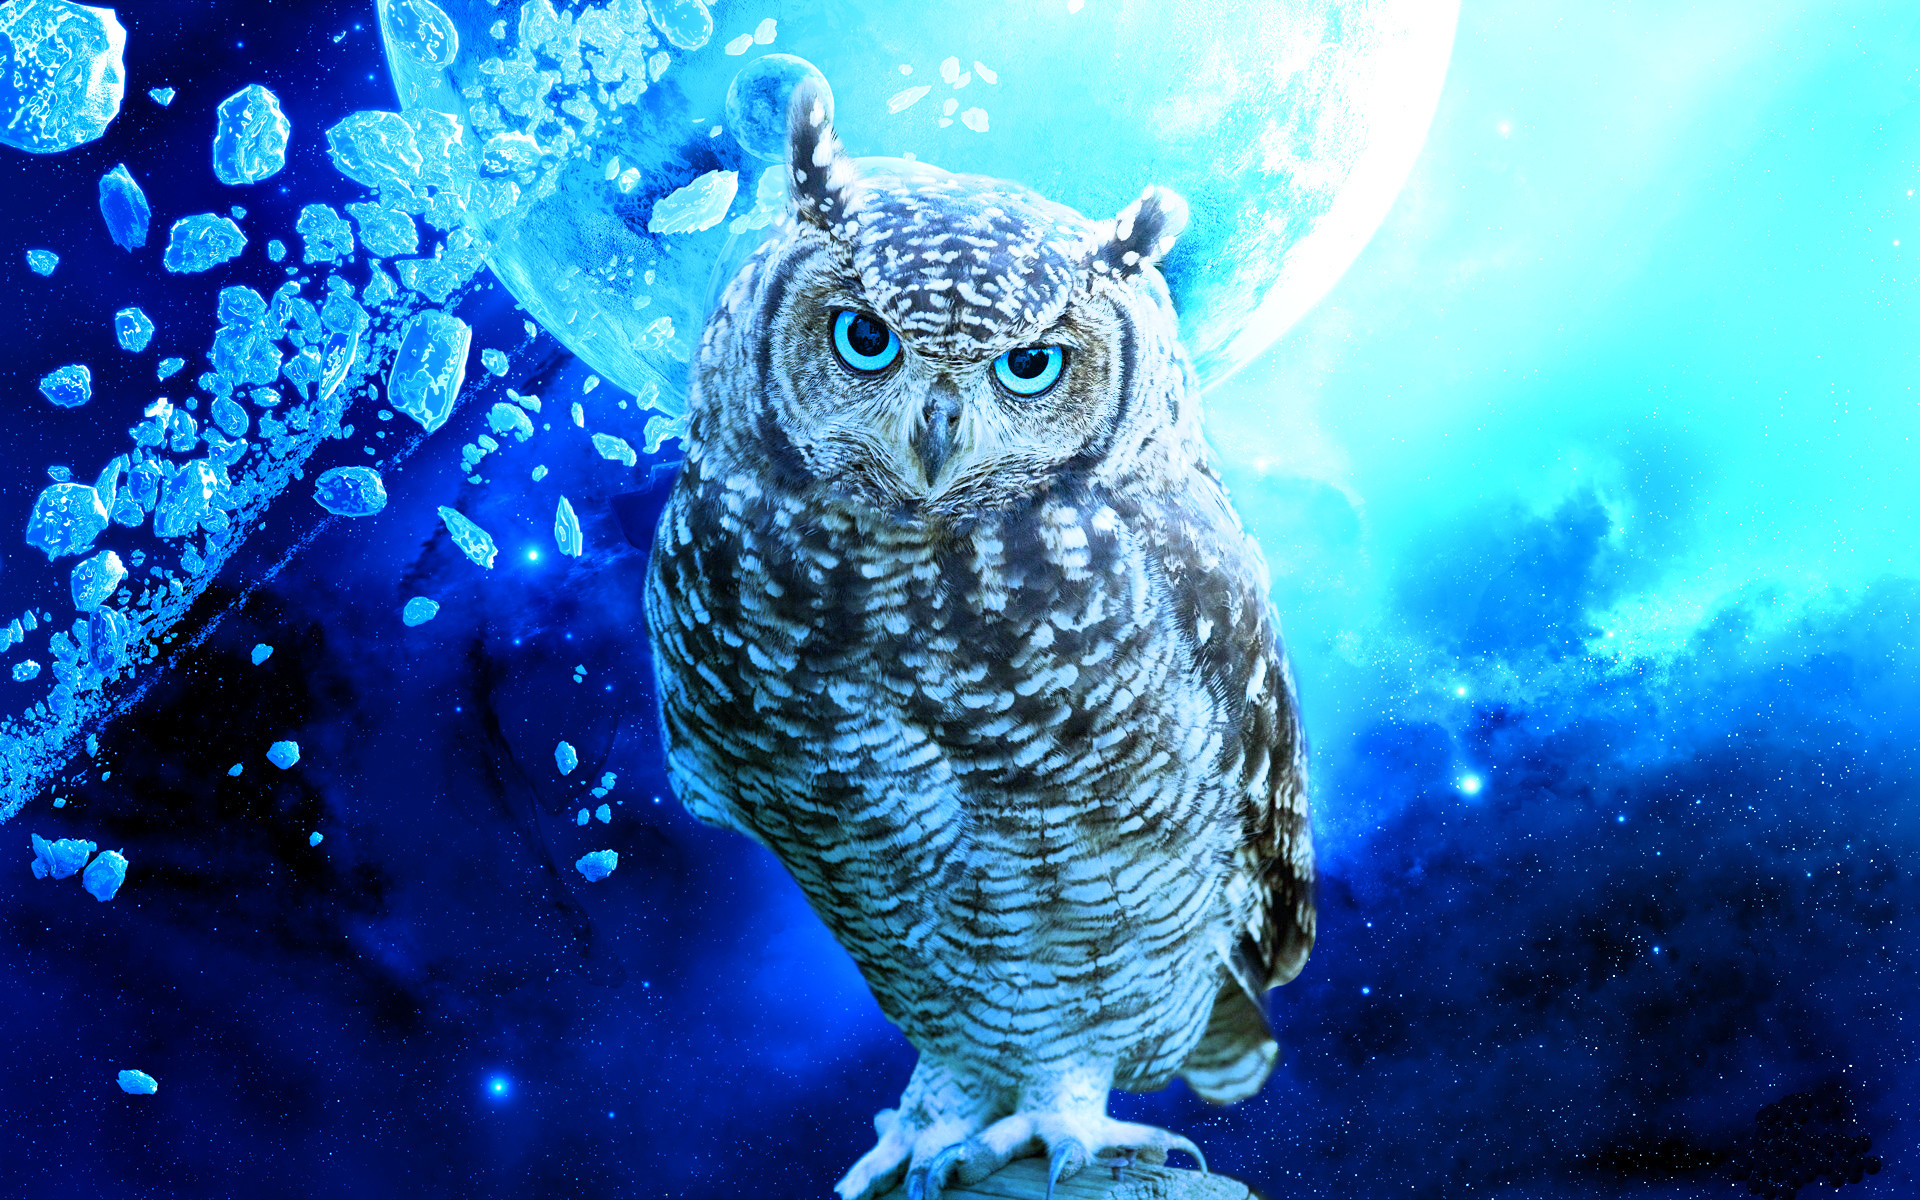 cute owl wallpaper (66+ images)